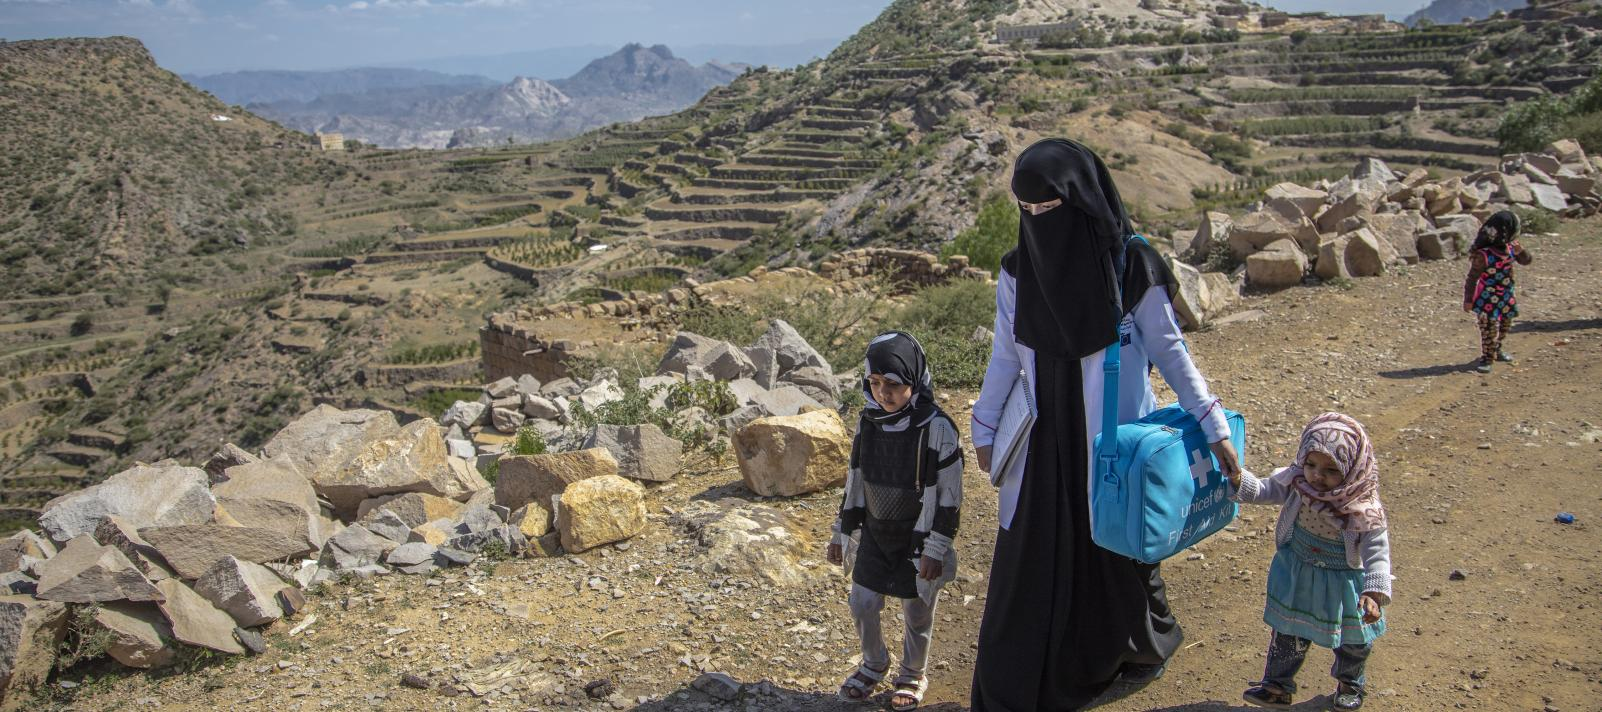 A community health worker conducting household visits in villages around Sana'a.